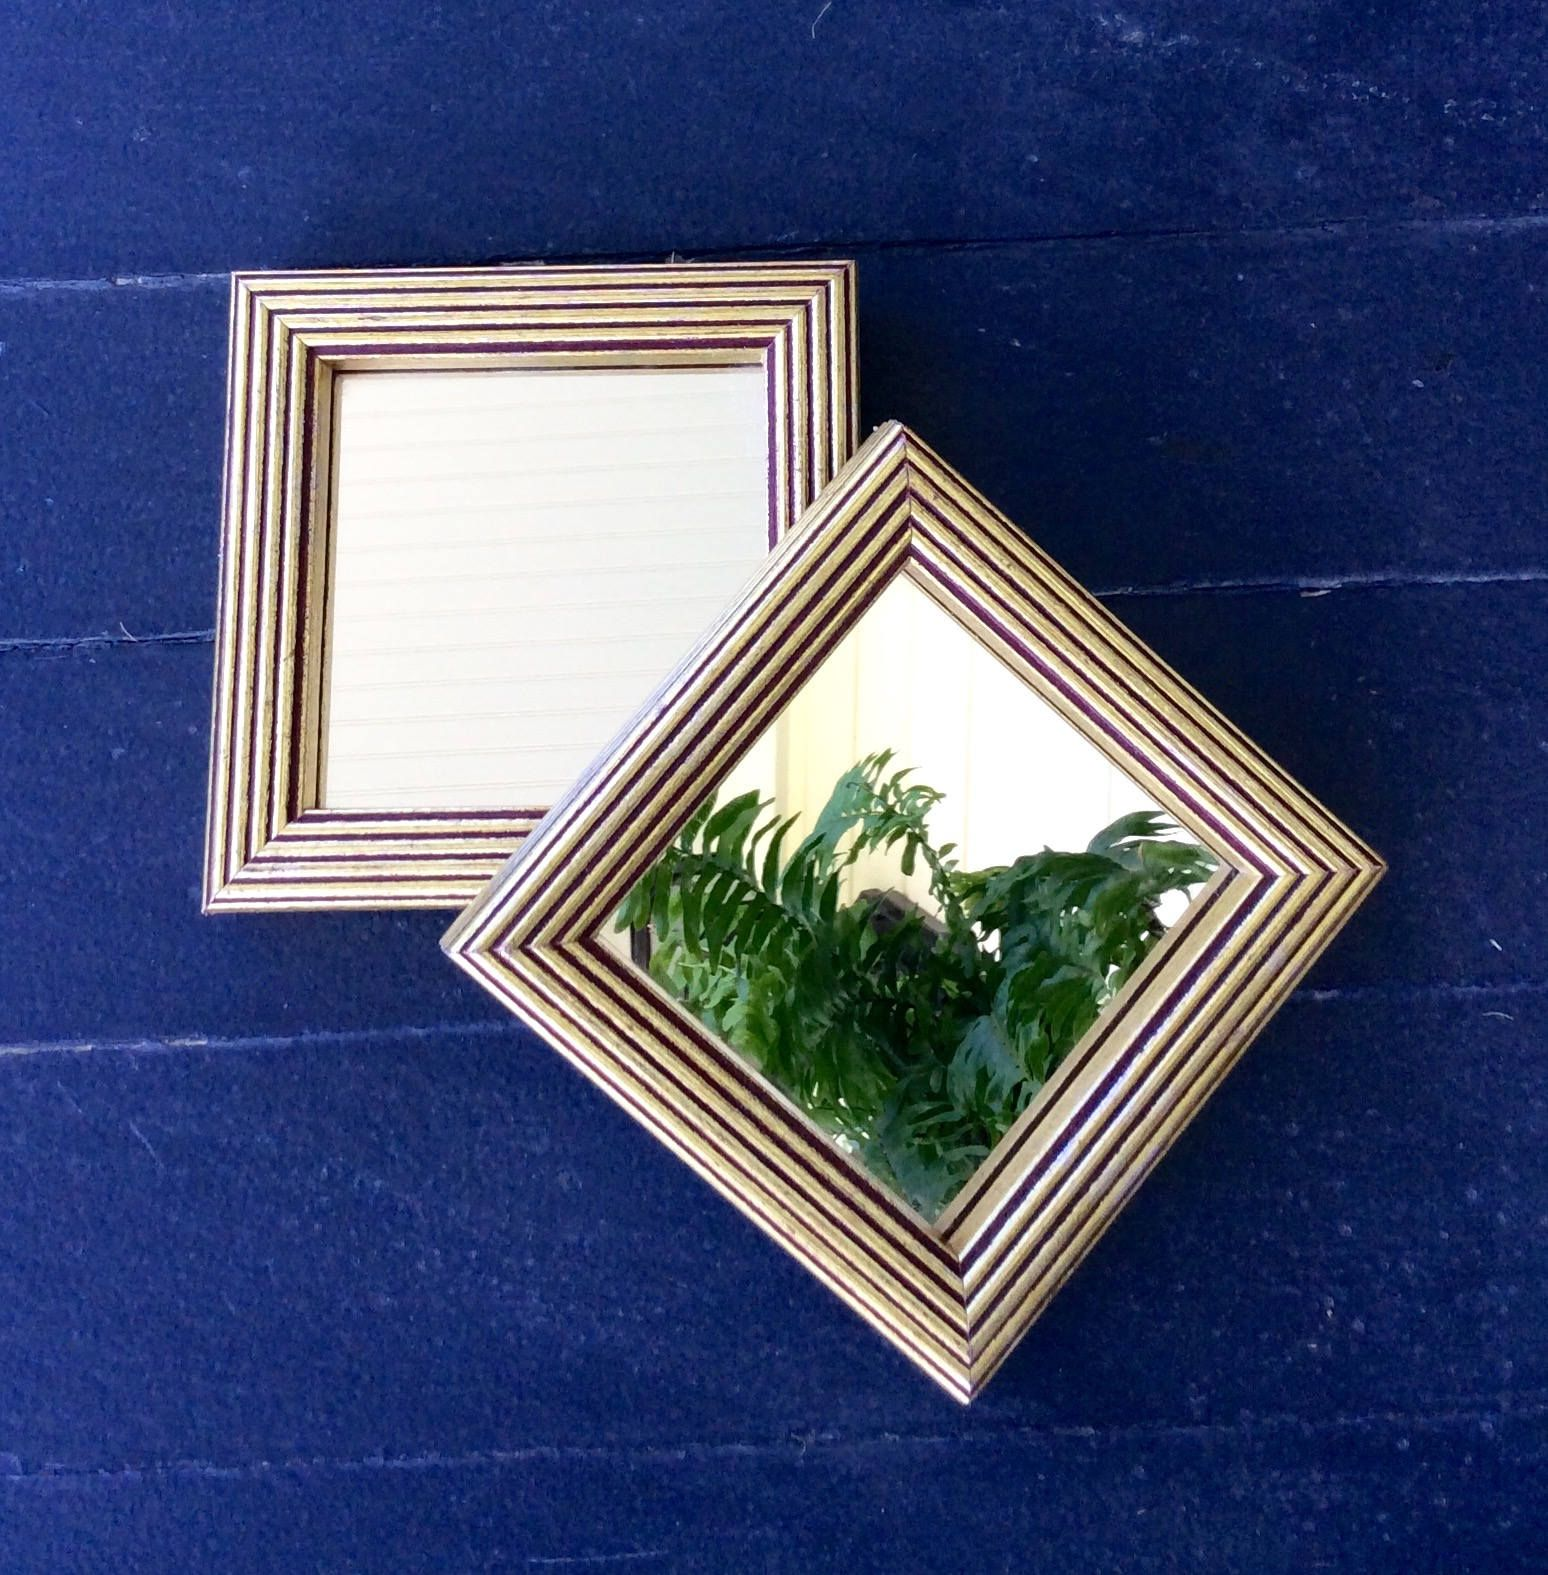 Vintage Gold Art Deco, Square, Wood Framed Mirror, Small Mirror,